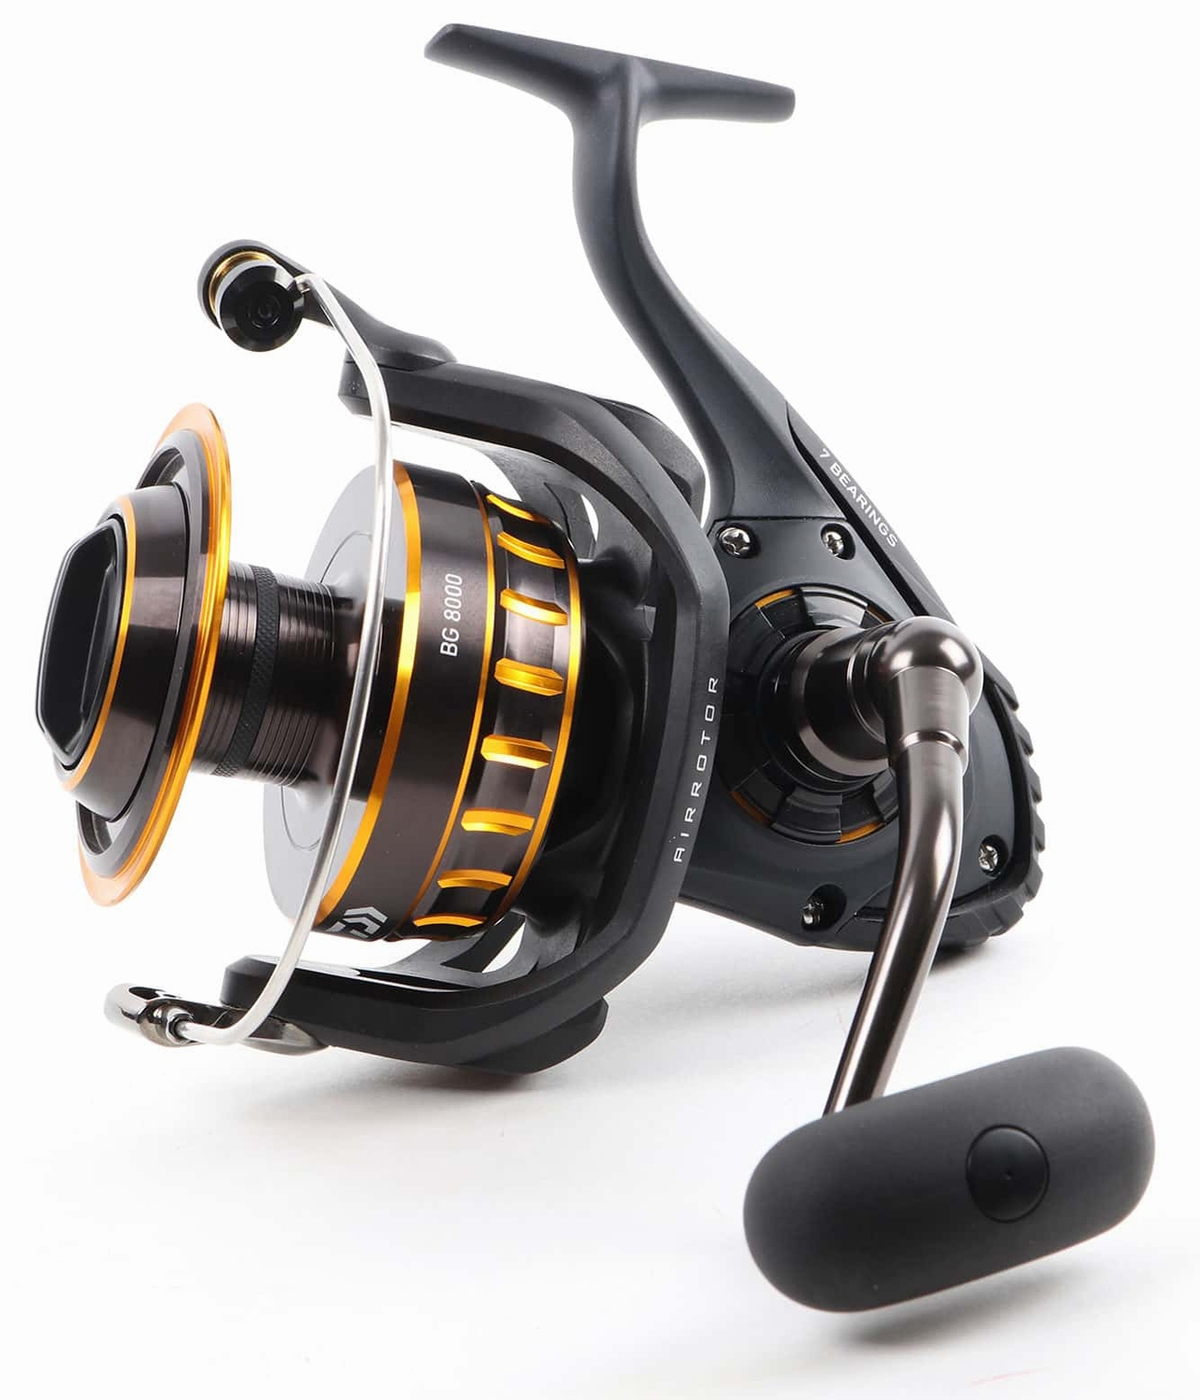 04a7d51c1fd Daiwa BG4500 BG Saltwater Spinning Reel | TackleDirect